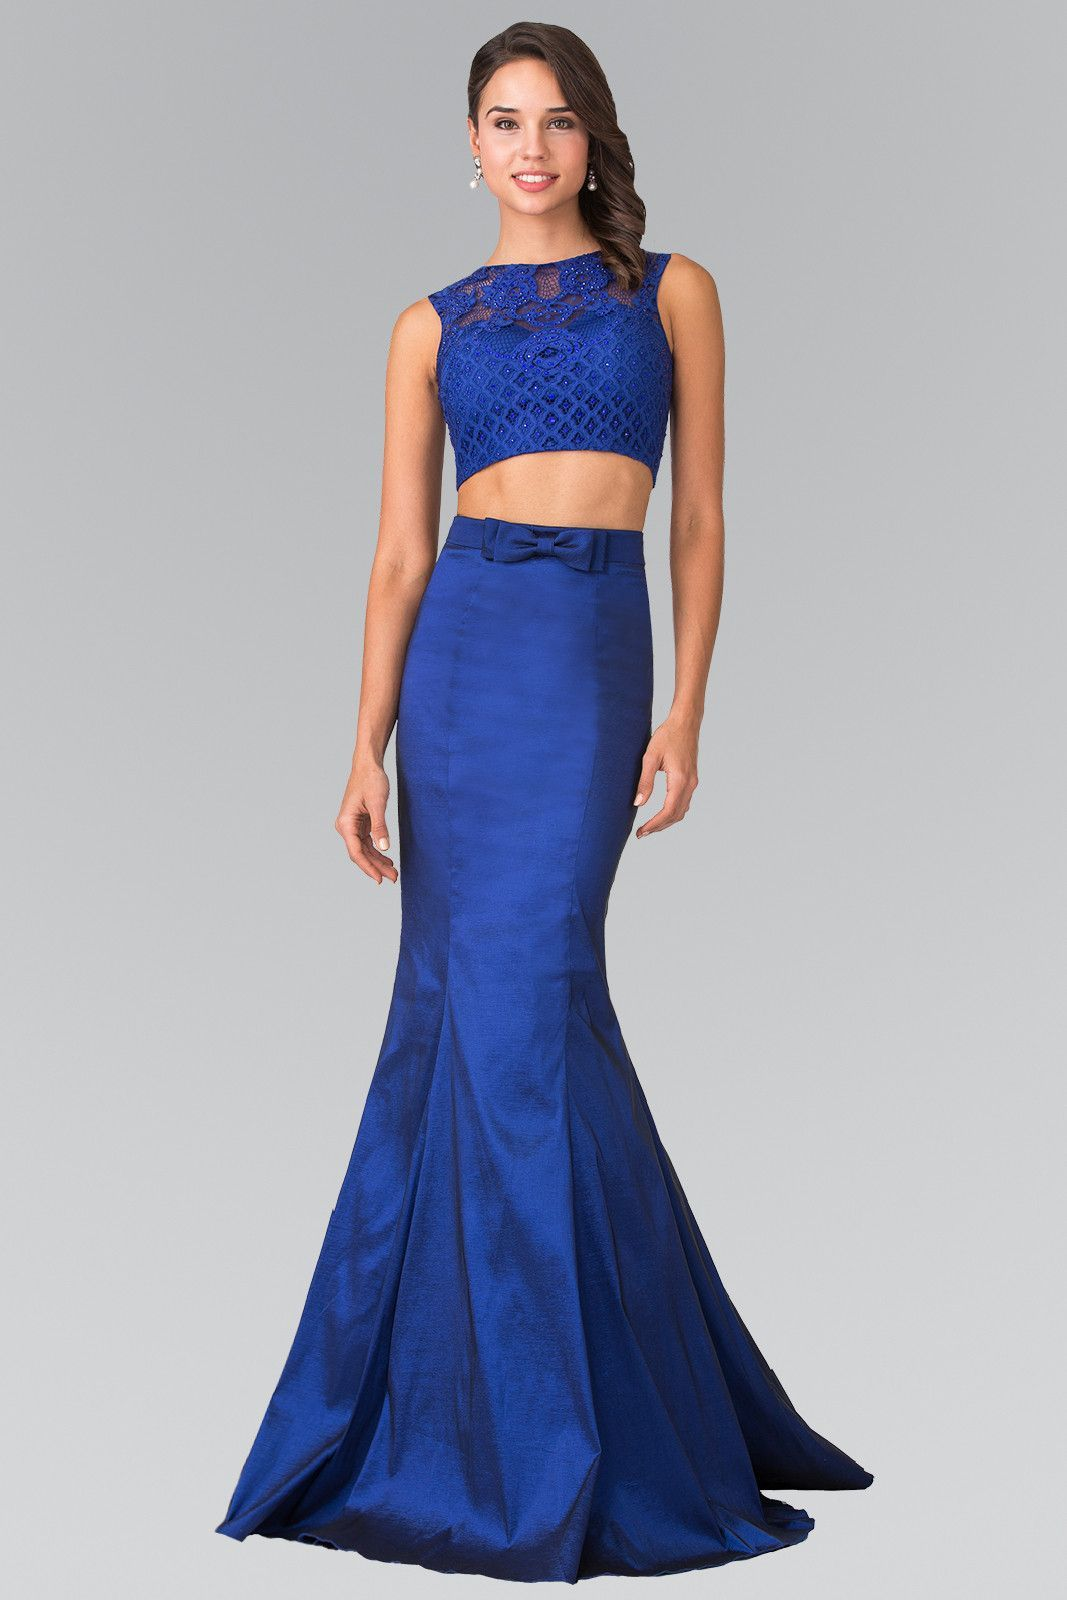 Long Two-Piece Mermaid Dress with Lace Top by Elizabeth K GL2354